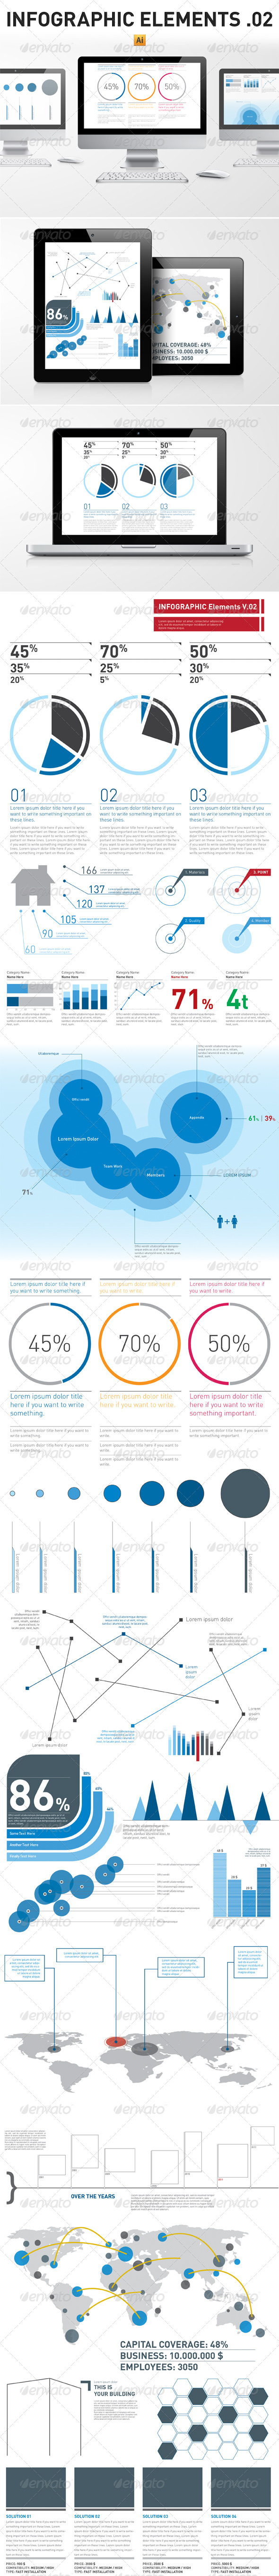 Infographic Elements Template Pack 02 - Infographics